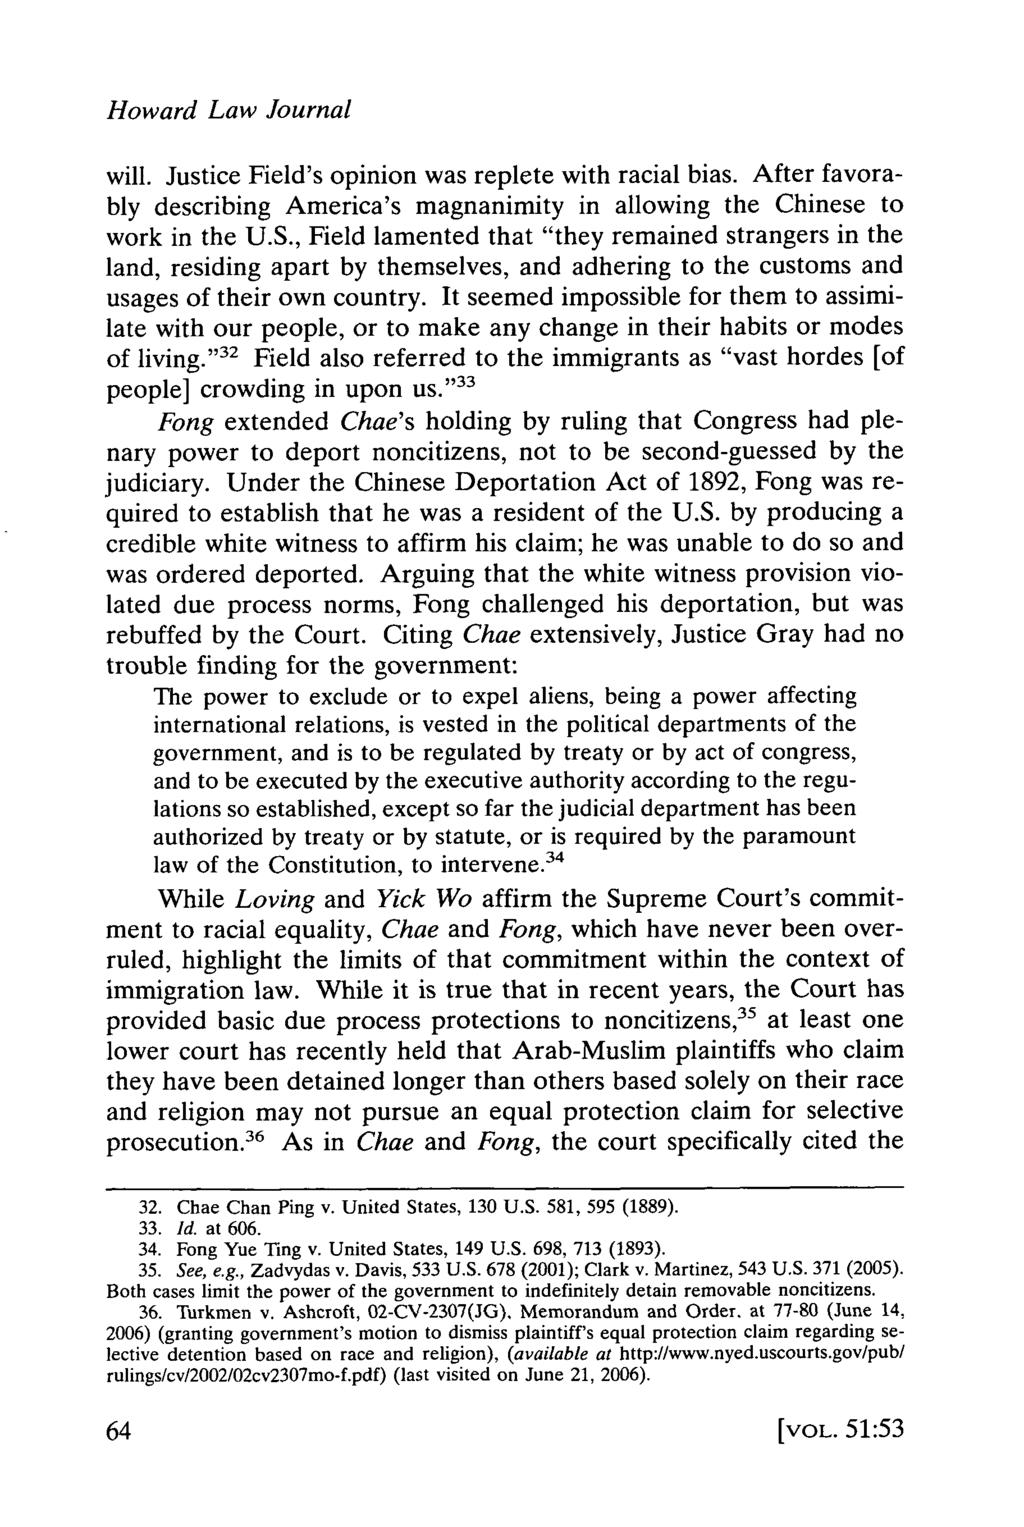 Howard Law Journal will. Justice Field's opinion was replete with racial bias. After favorably describing America's magnanimity in allowing the Chinese to work in the U.S.